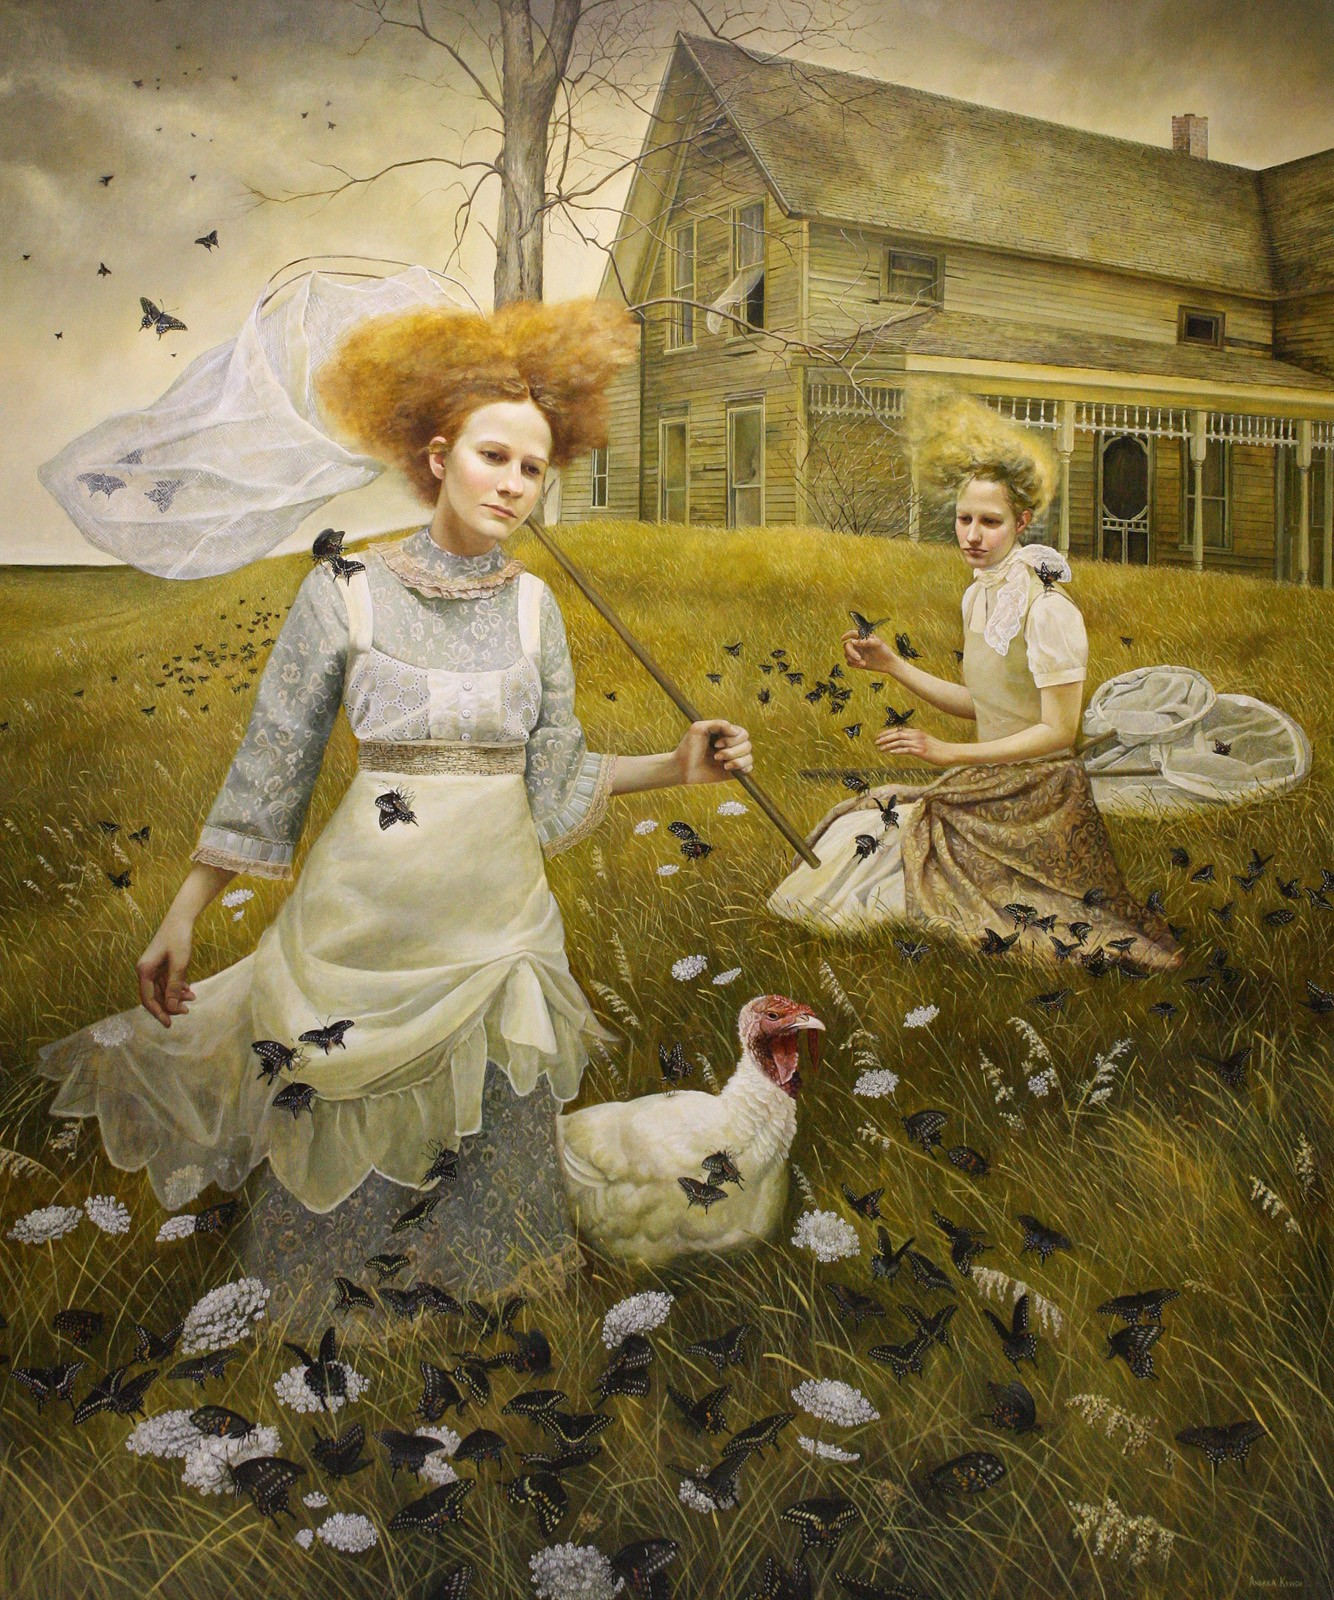 Andrea Kowch gothic rural witchcraft paintings